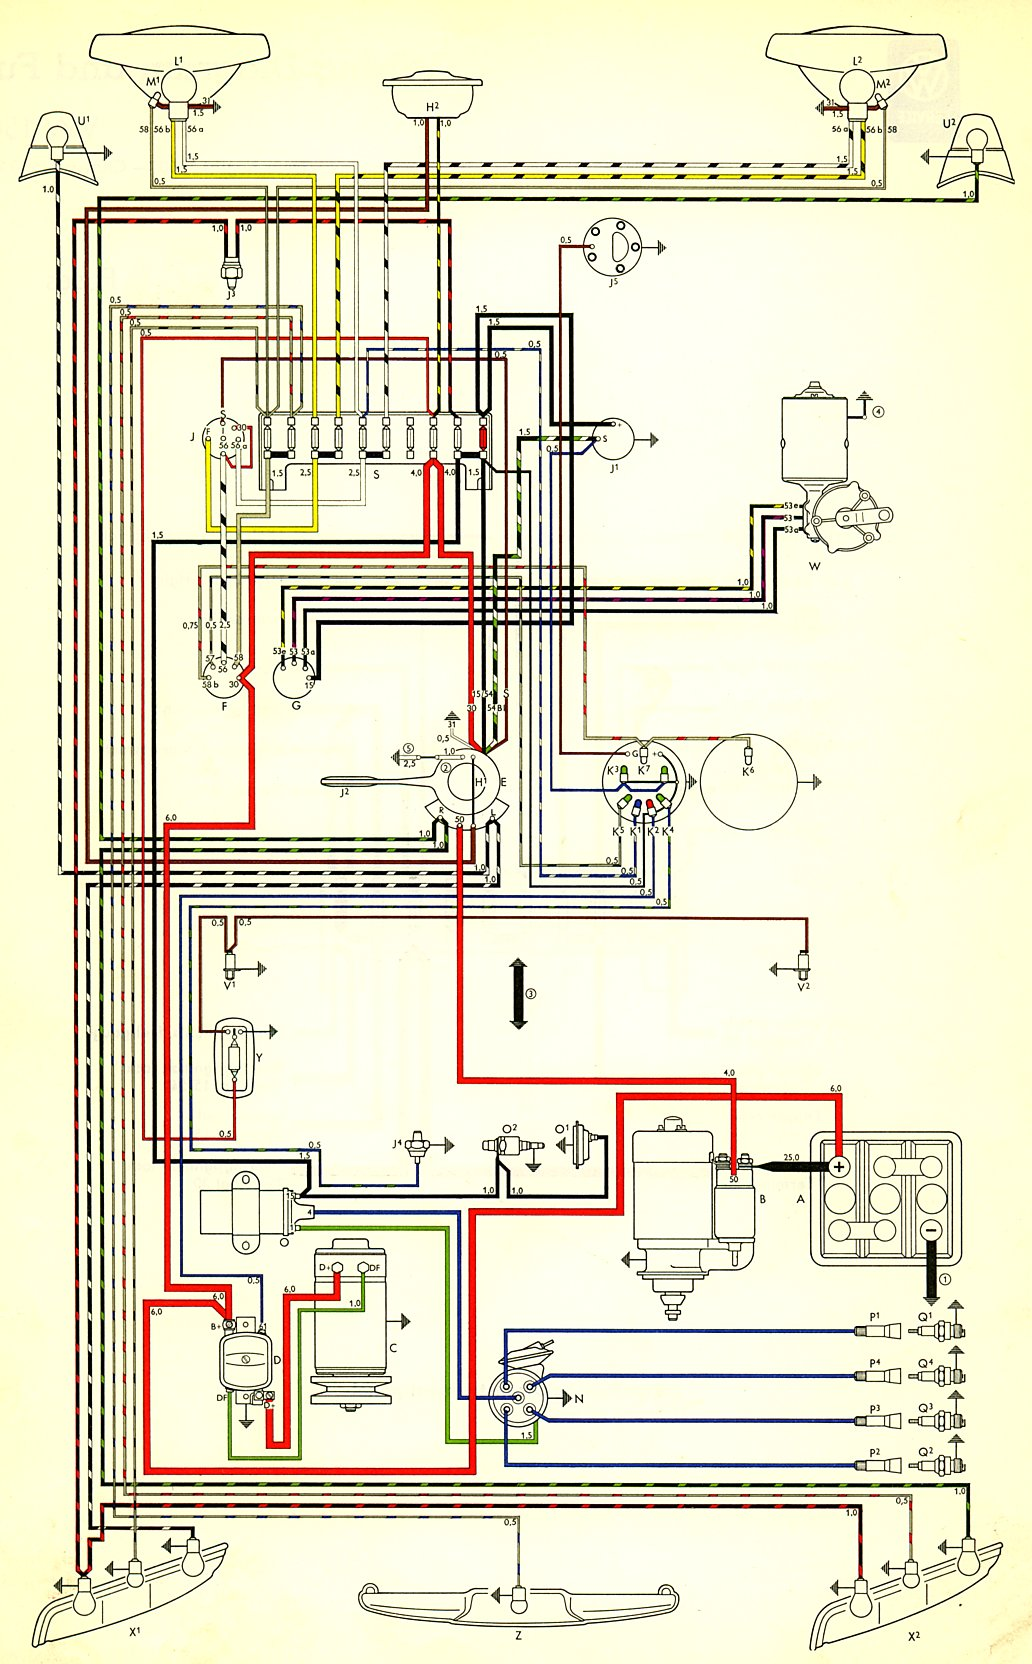 Type 3 Wiring Diagrams Diagram In Addition Vw Beetle Also Electrical